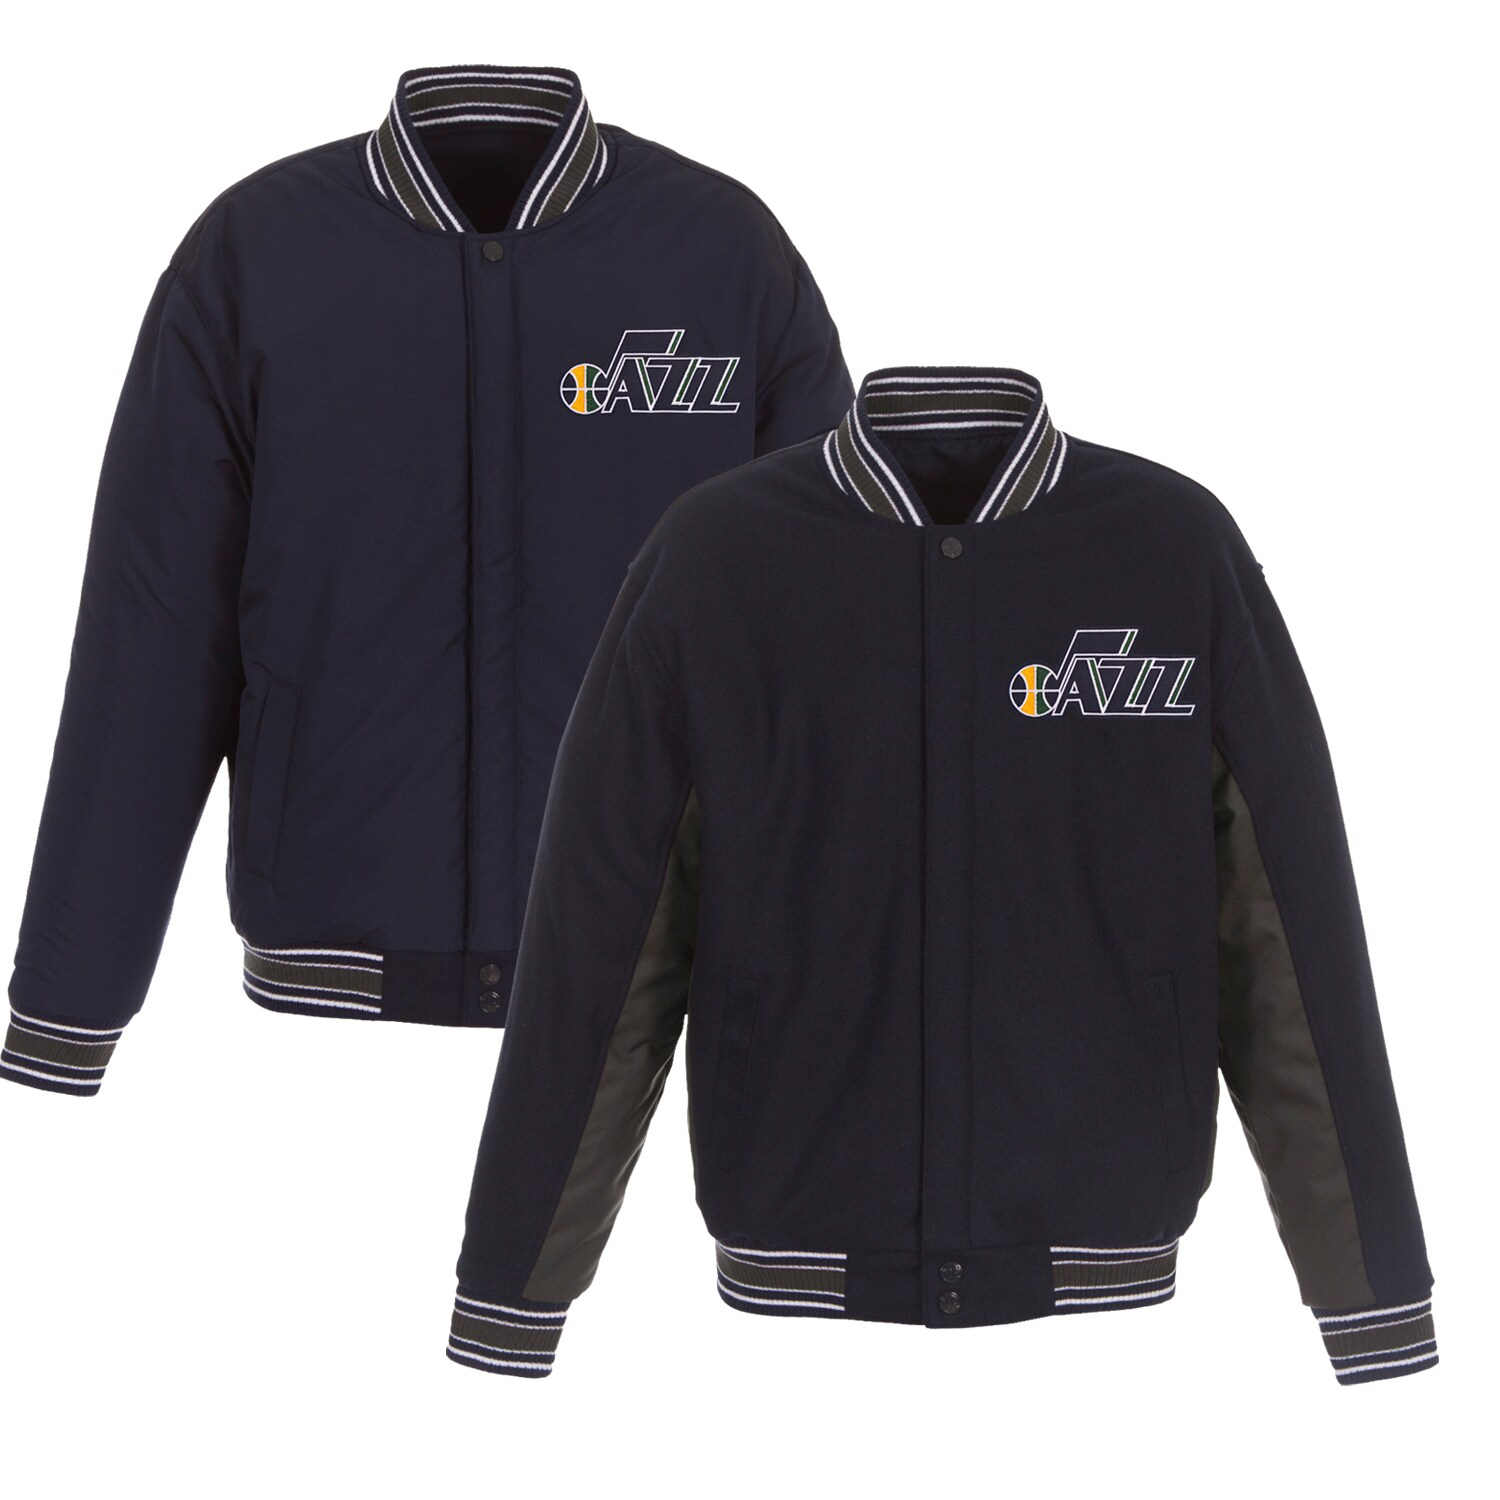 Utah Jazz JH Design Reversible Wool & Poly-Twill Full-Snap Jacket - Navy/Charcoal